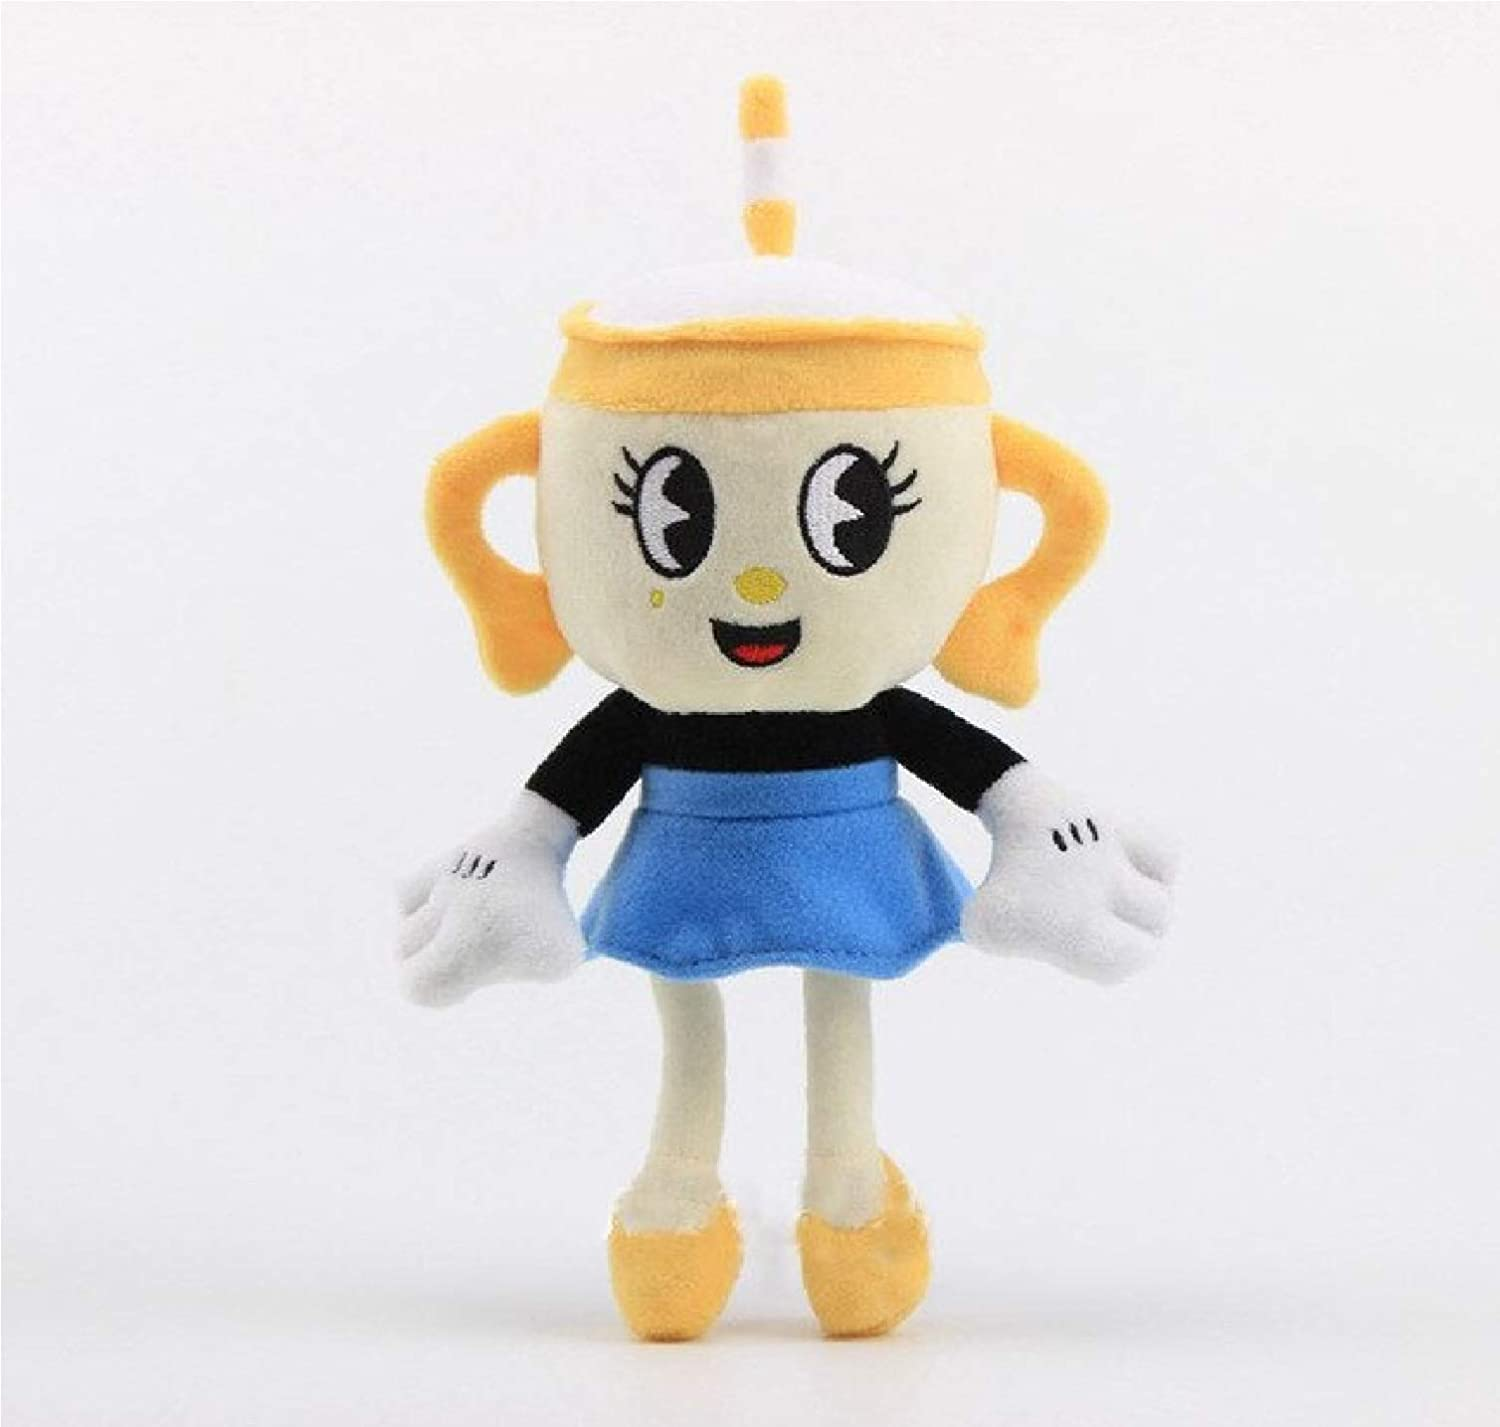 Cuphead Plush Toy | Cuphead Toy Mugman Ms. Chalice Ghost King Dice Cagney Carnantion Puphead Dolls Toys for Children Gifts - by Gifts For Life (Ms. Chalice 23cm)